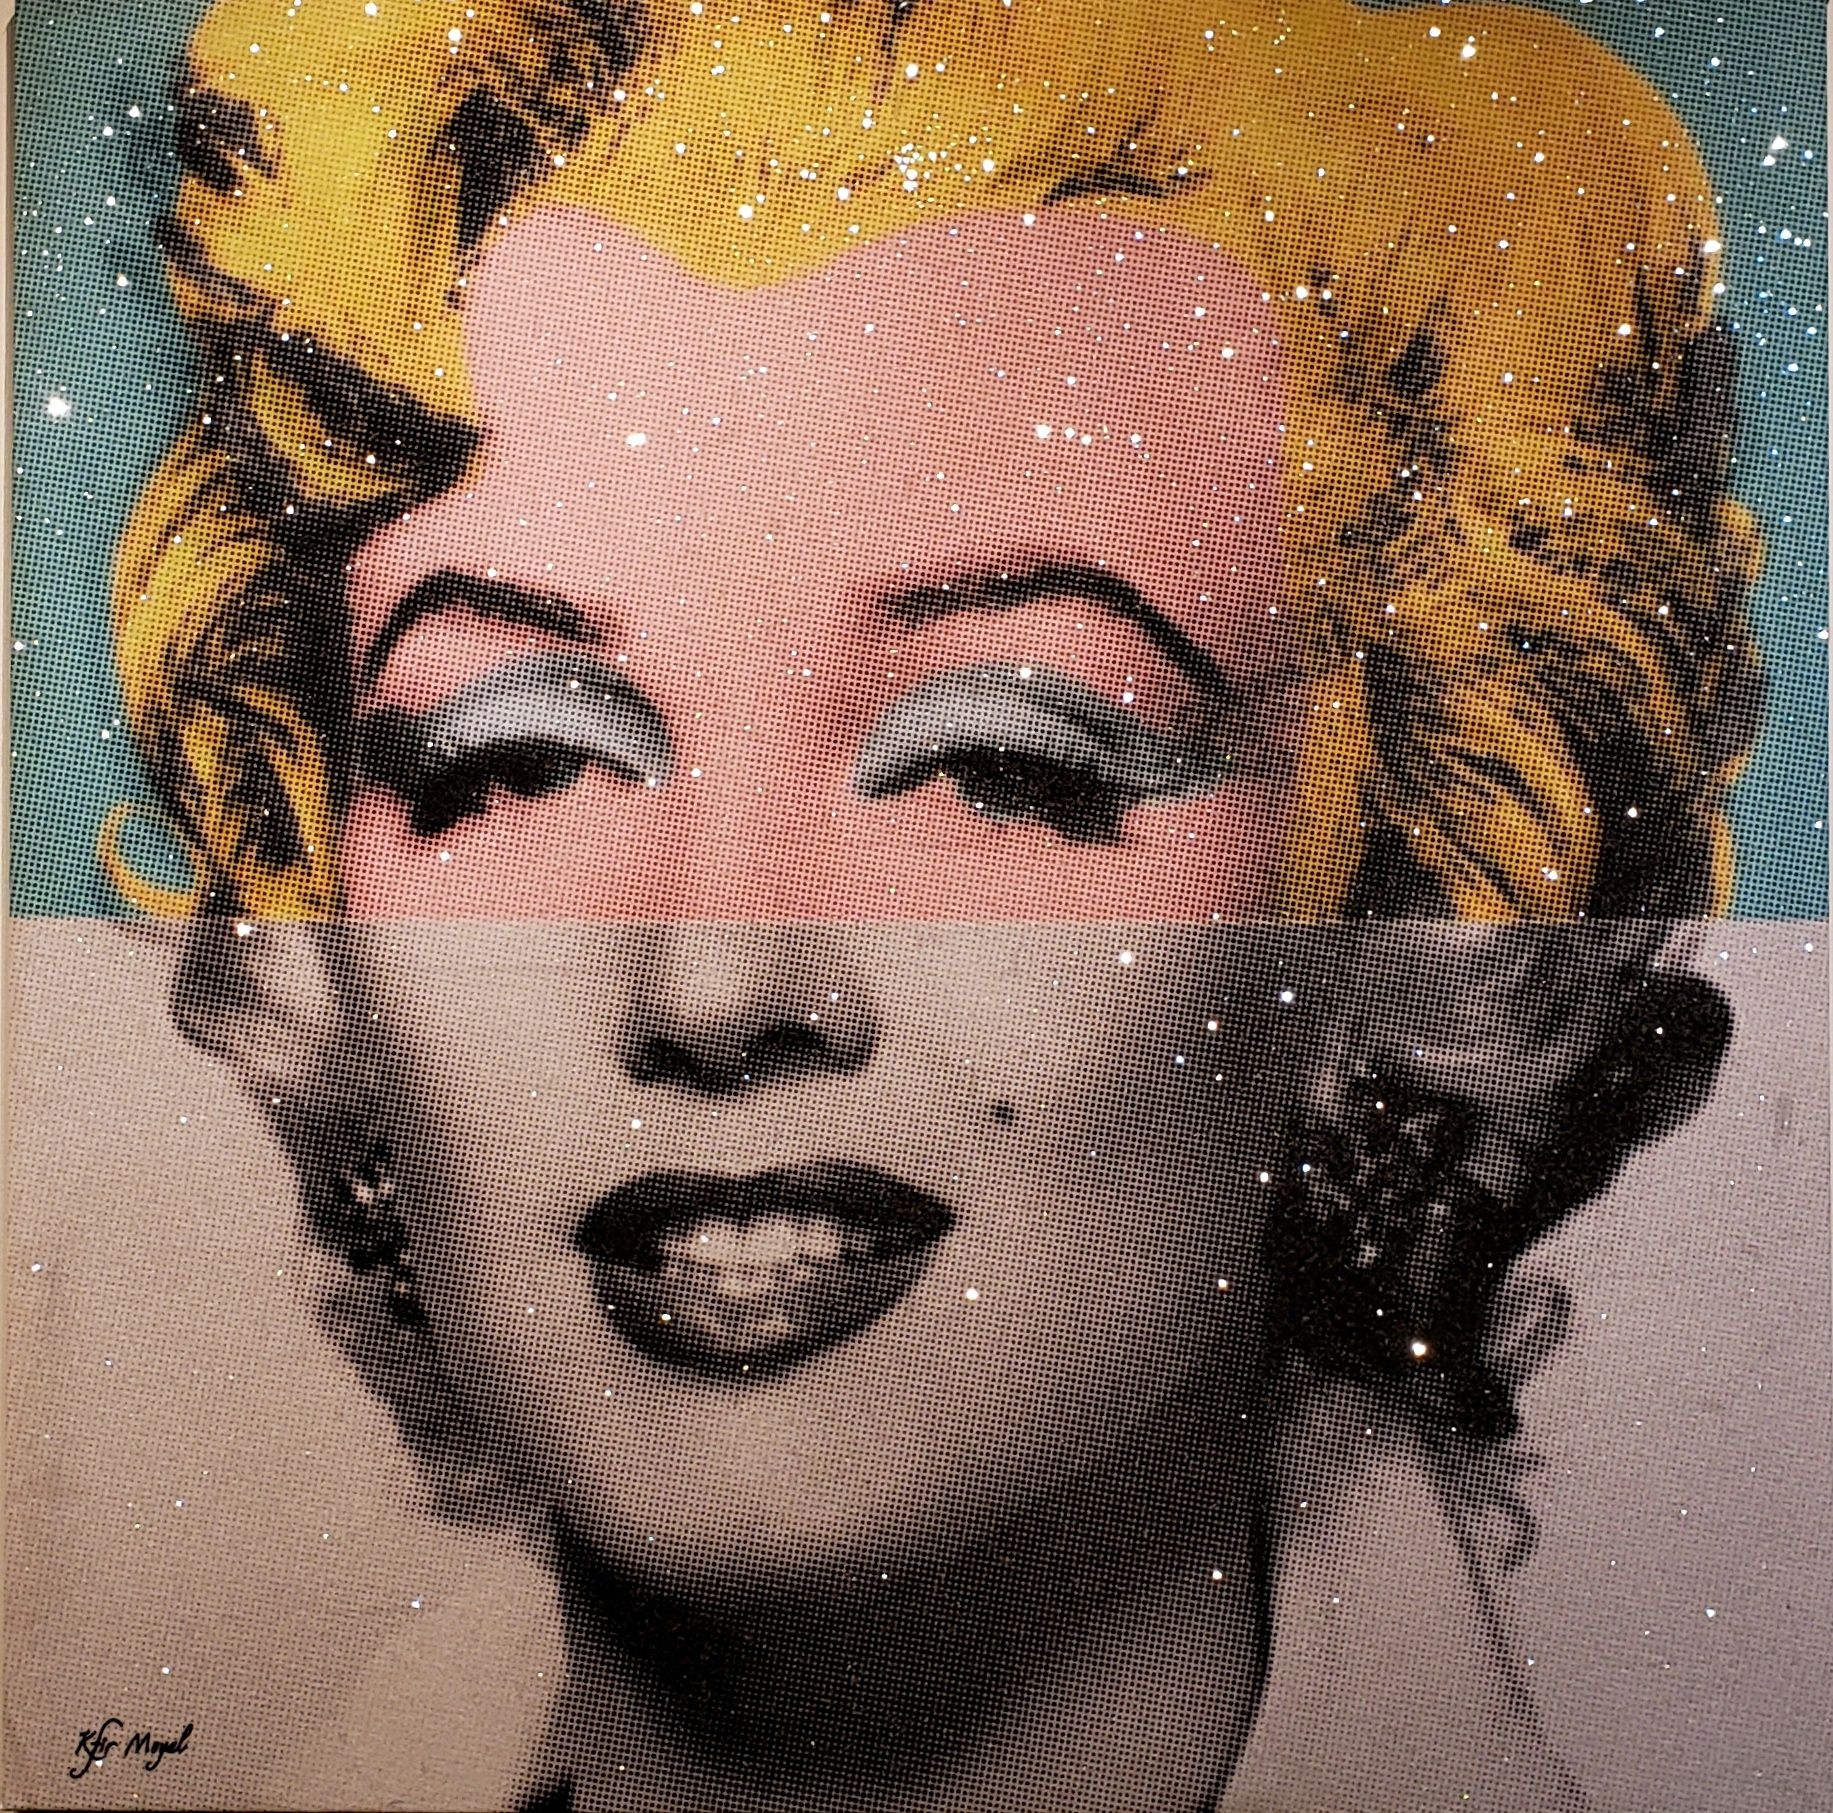 Kfir Moyal; Iconic Marilyn, 2018; Limited edition mixed media silkscreen on canvas, with hand-embellished Swarovski crystals; Signed; Off The Wall Gallery Houston.